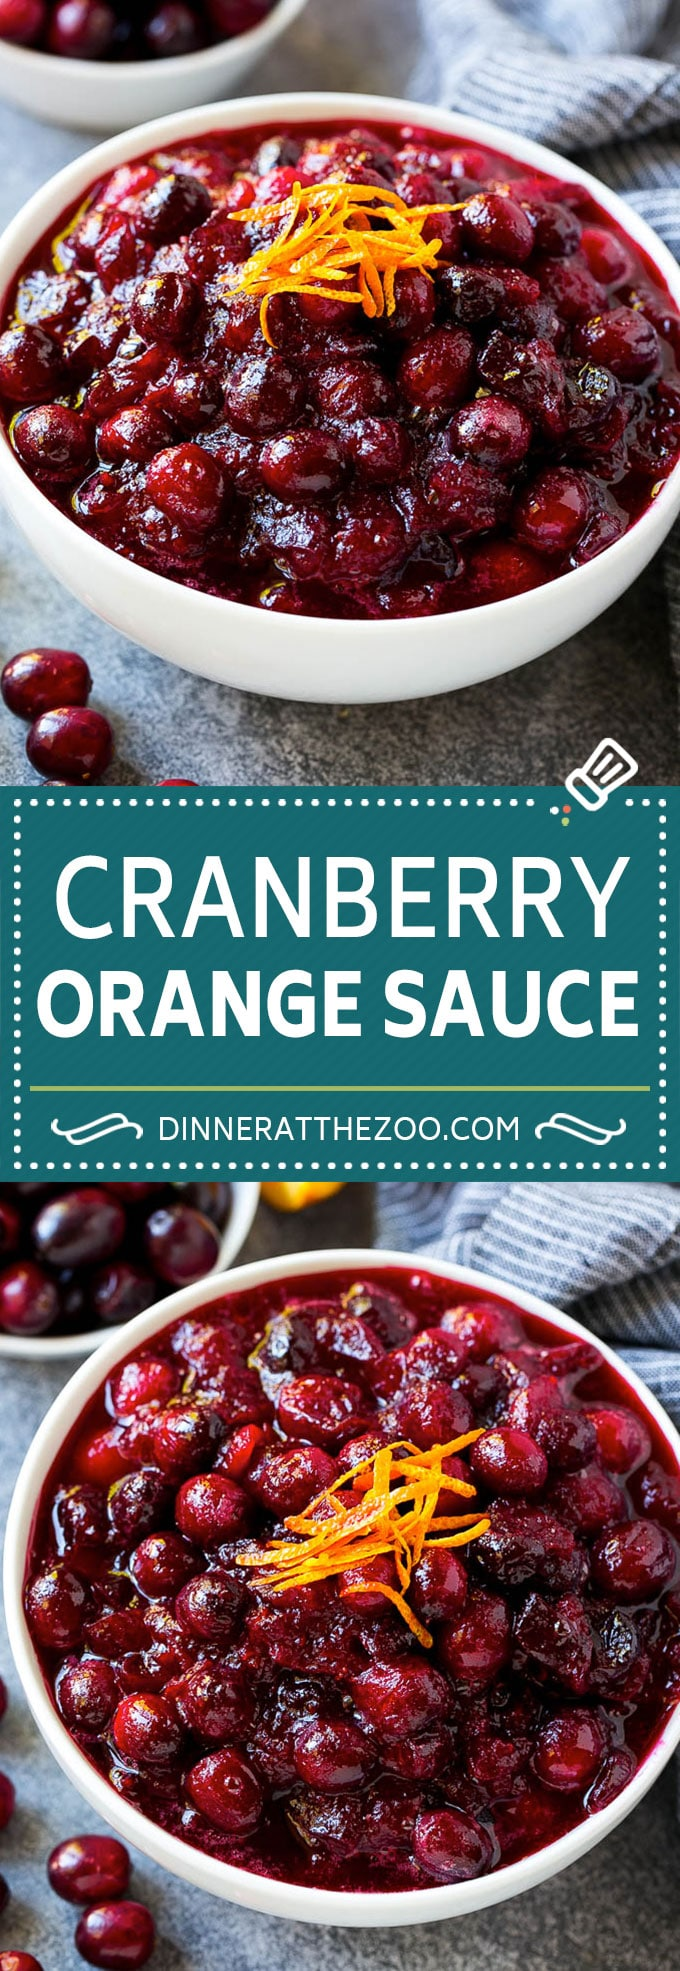 Cranberry Orange Sauce Recipe | Homemade Cranberry Sauce | Fresh Cranberry Sauce #cranberry #orange #fall #thanksgiving #sauce #dinner #dinneratthezoo